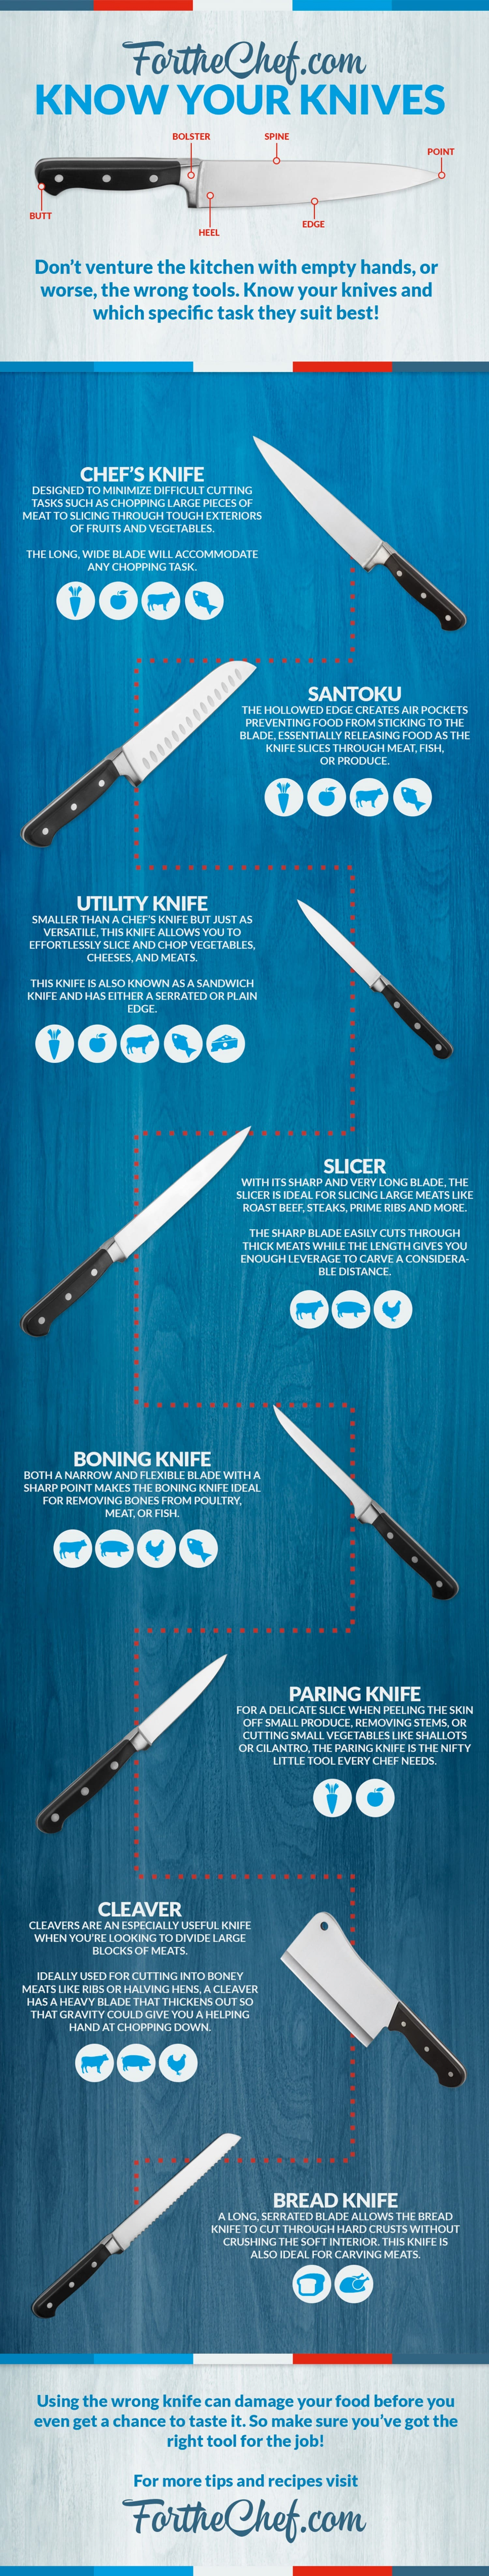 know-your-knives--a-guide-to-kitchen-knives_57ed29cb75296_w1500.jpg